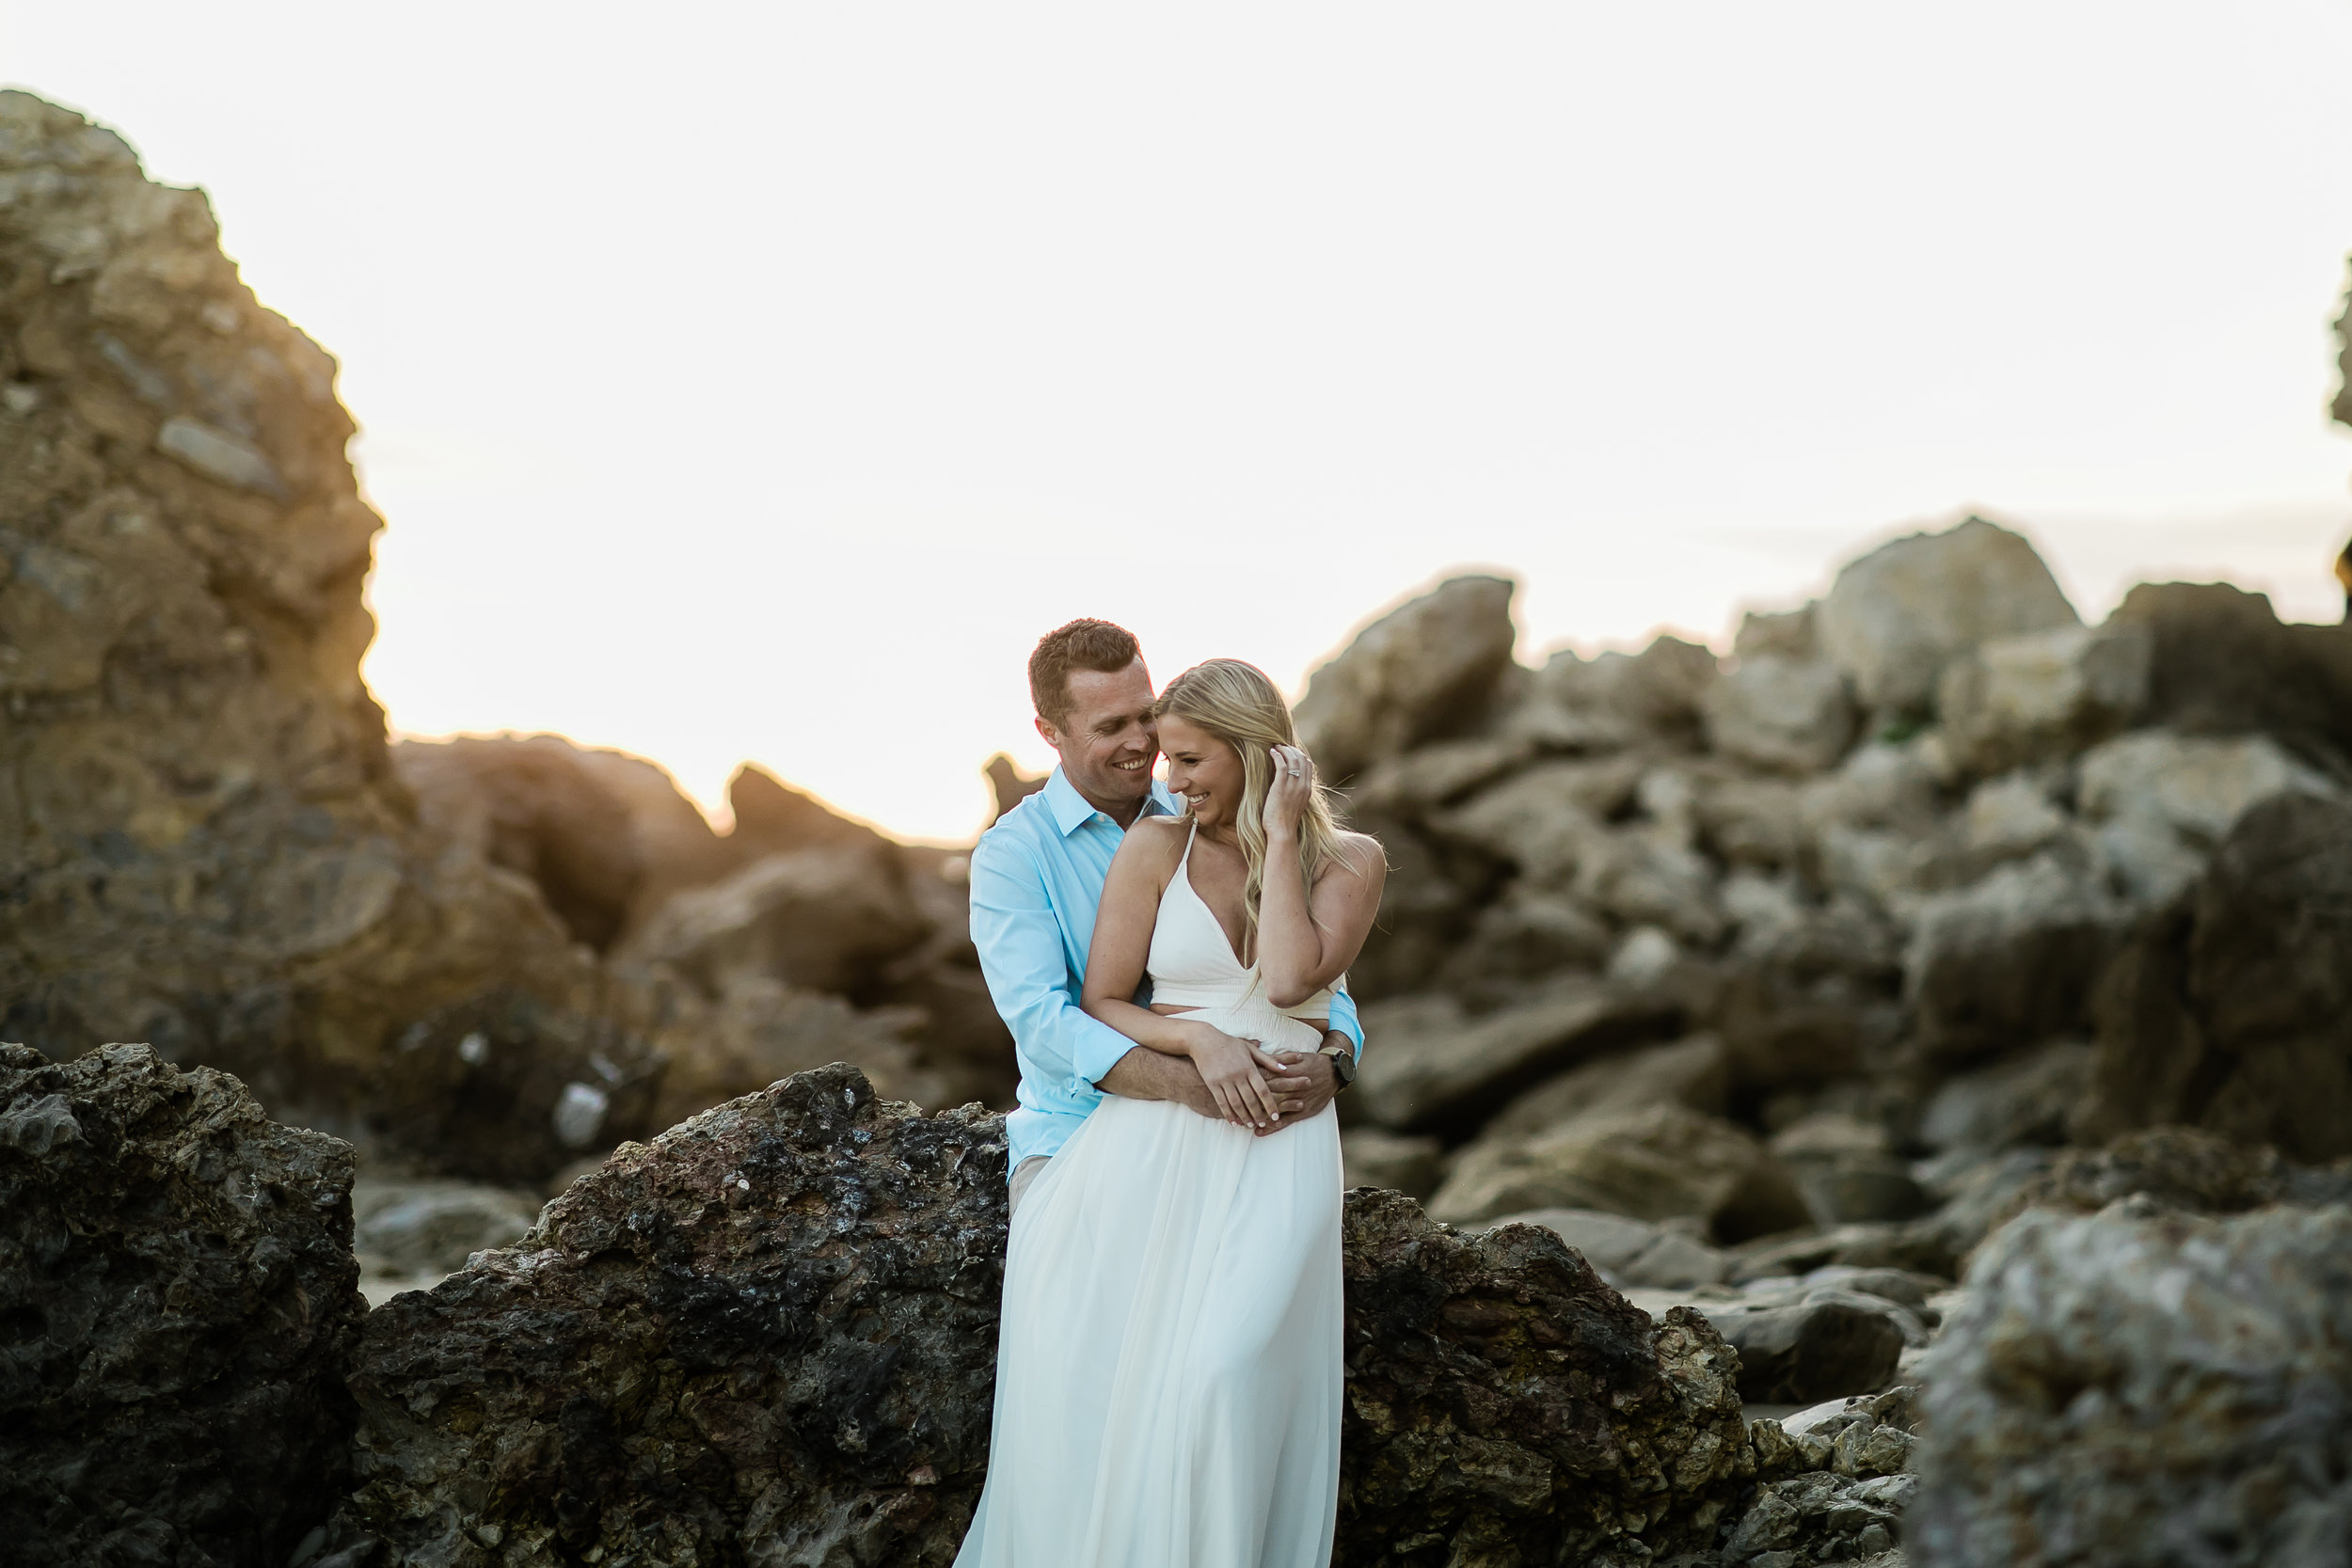 Newport Beach Engagement Photos-15.jpg